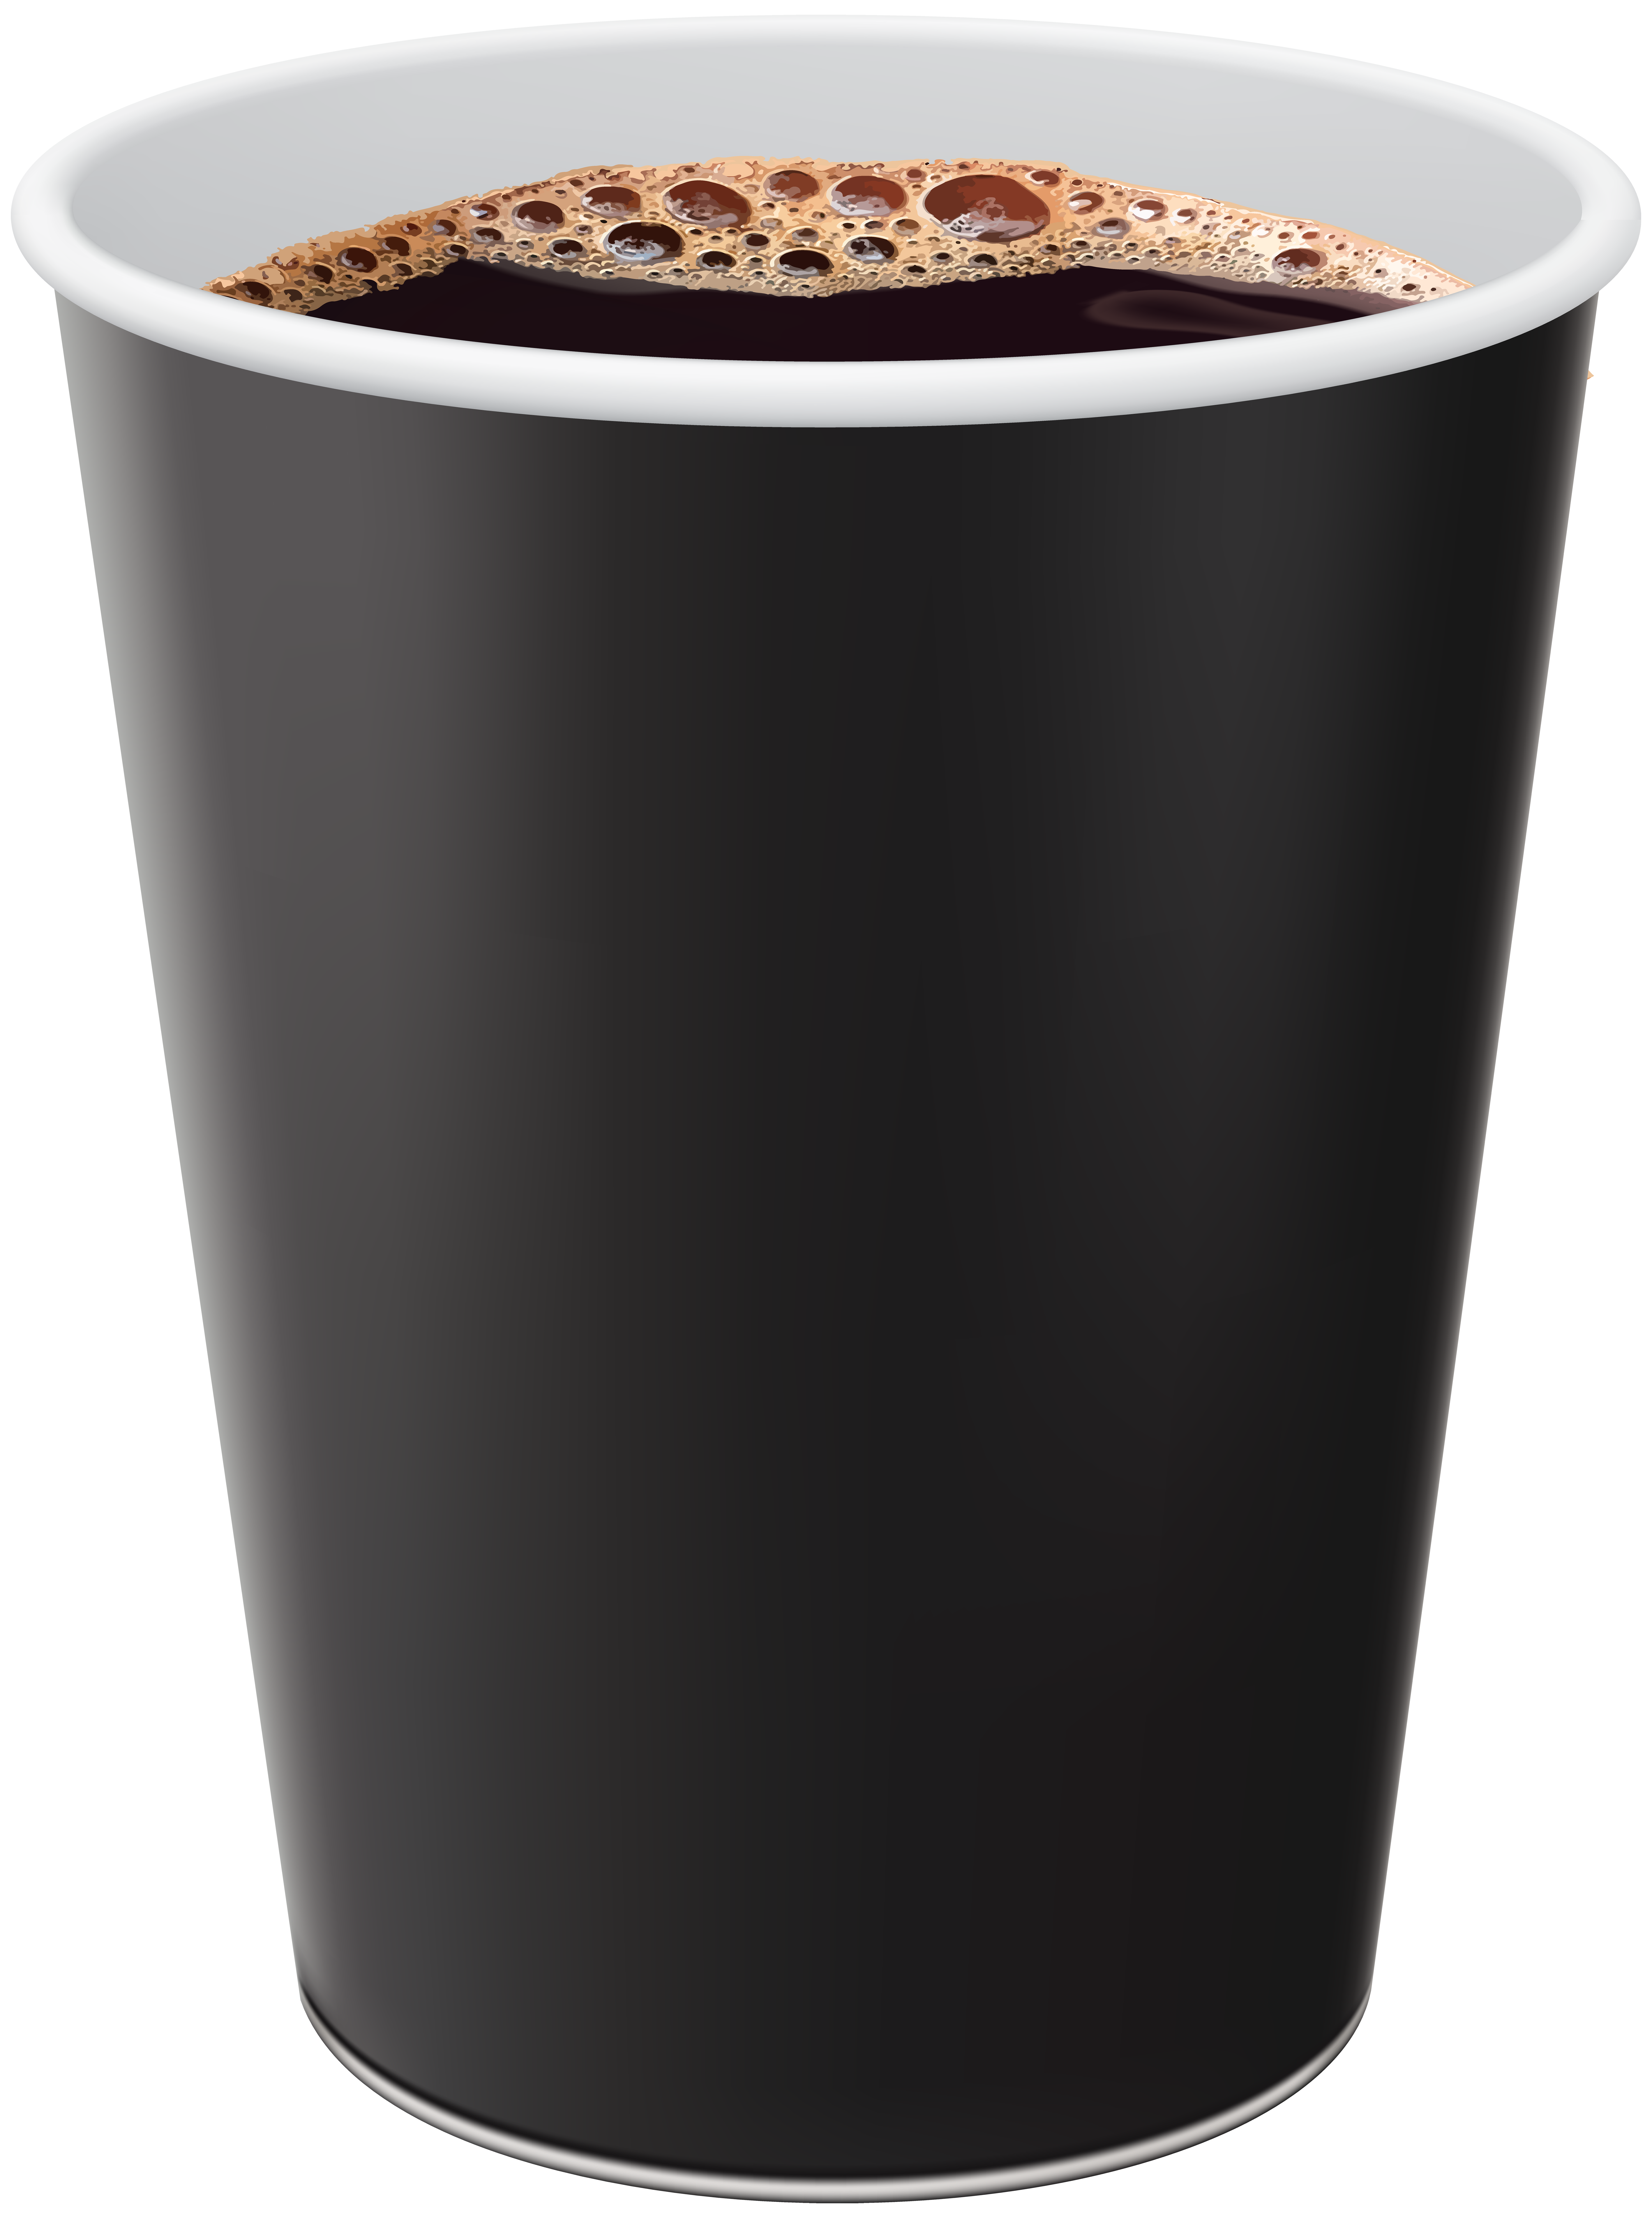 Coffee Cup Espresso Latte Takeaway Cafe PNG Image